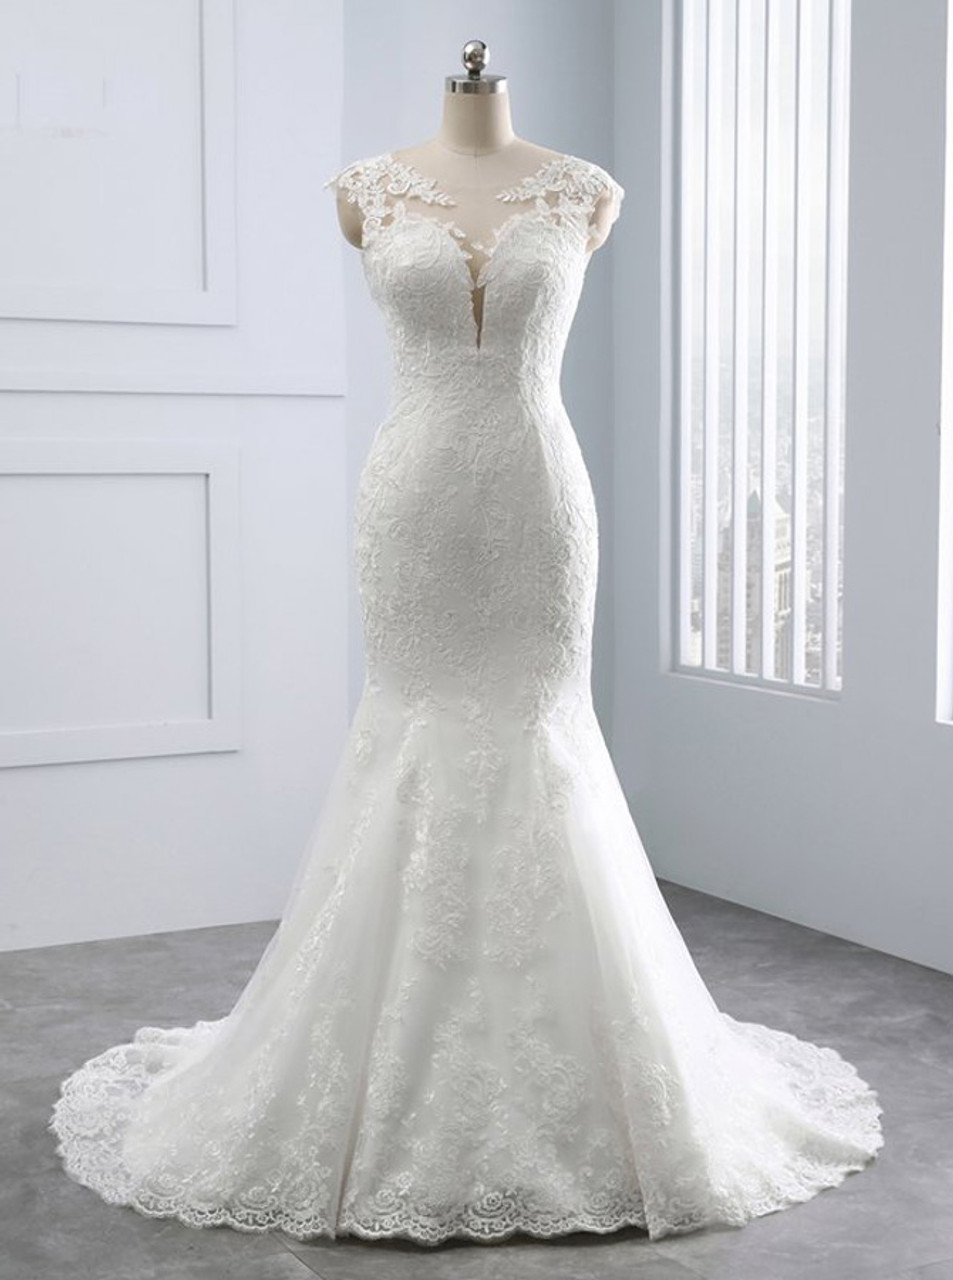 Lace Vintage Wedding Dress.Ivory Mermaid Wedding Dresses Lace Vintage Wedding Dress 11682